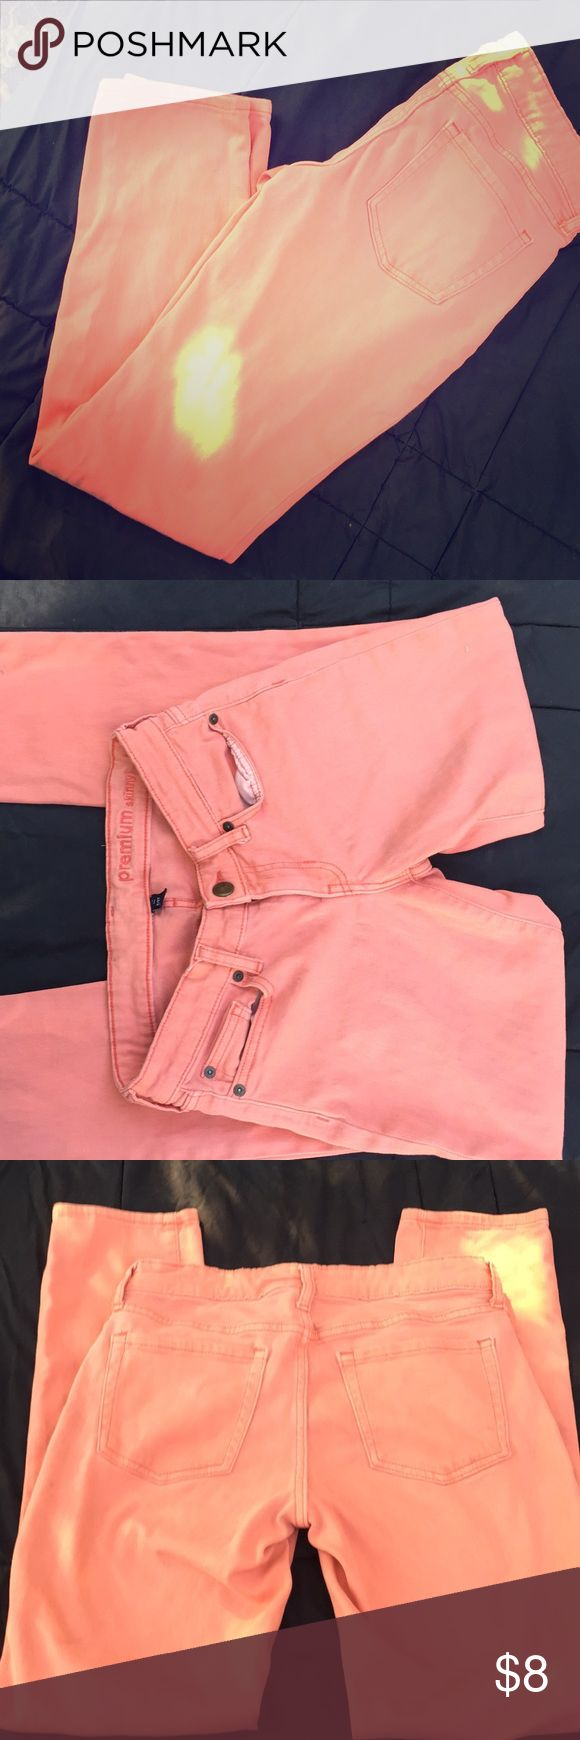 Coral skinny jeans by Gap Used pale orange-coral colored jeans. Size 4.  Room pics outside  the bright spot is the sun GAP Jeans Skinny